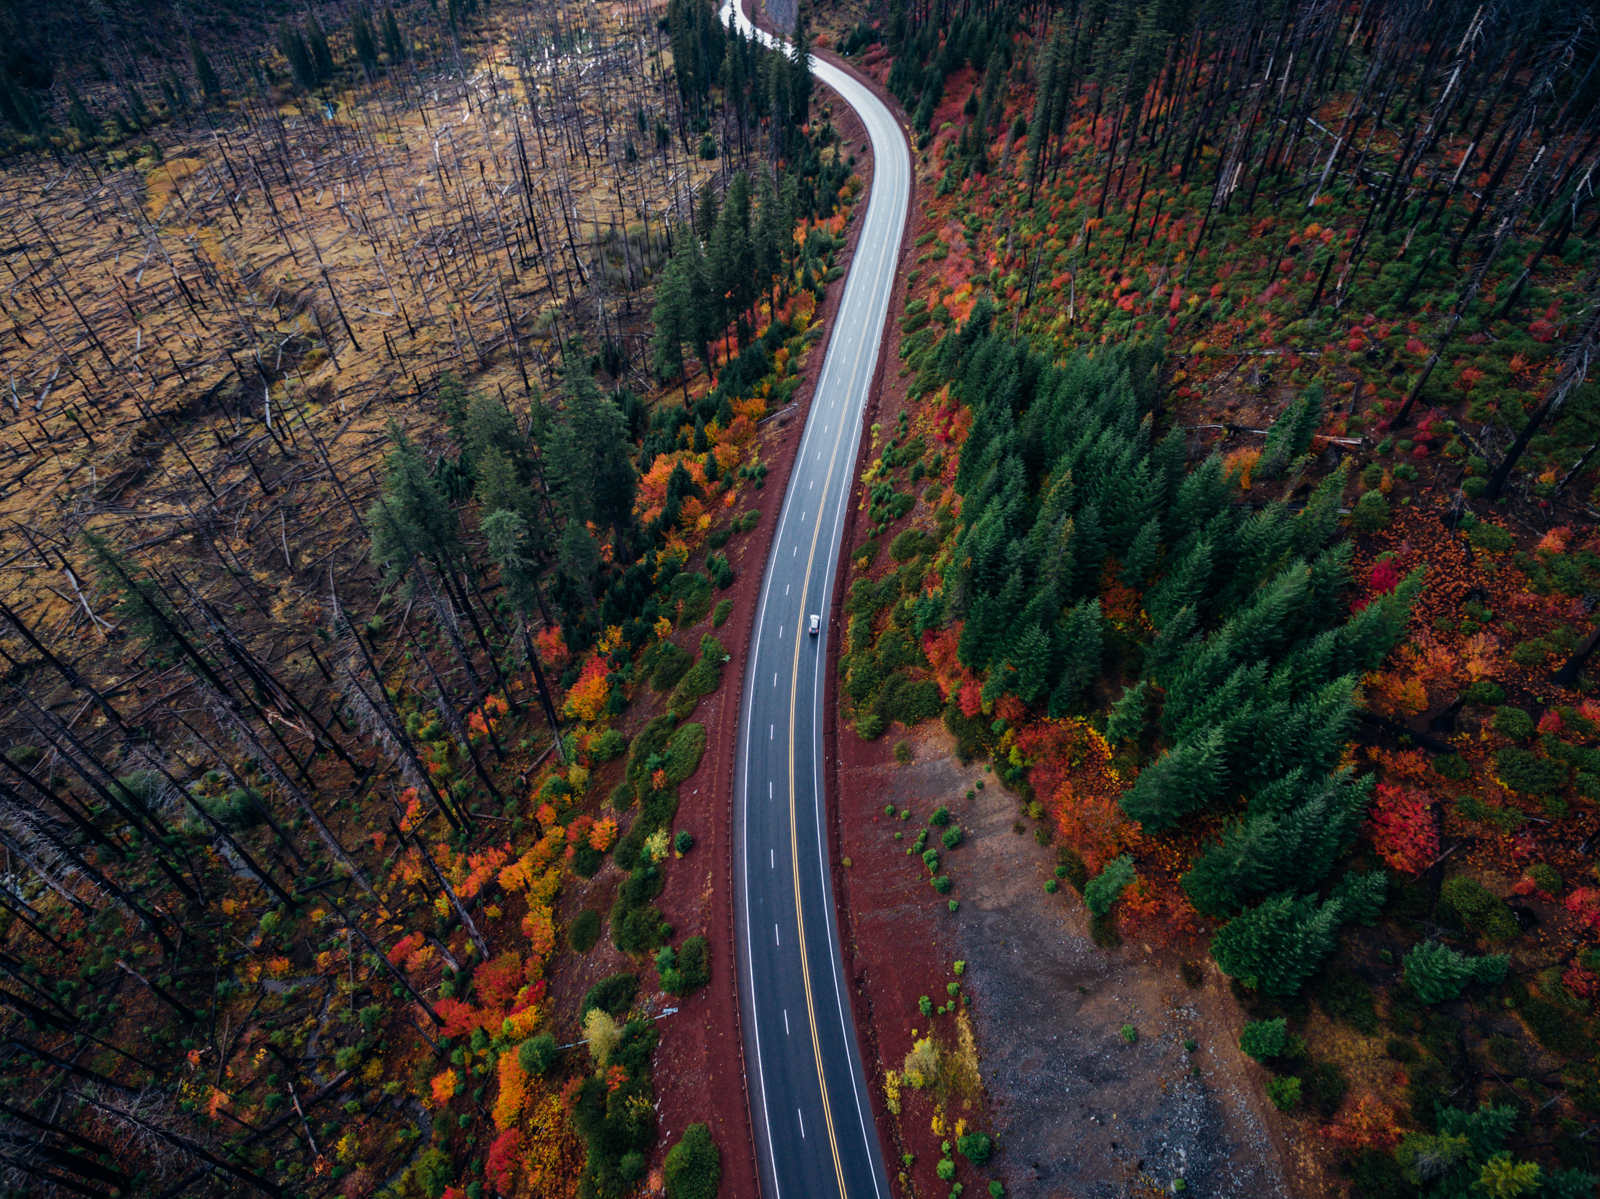 Road through Duke Forest from above